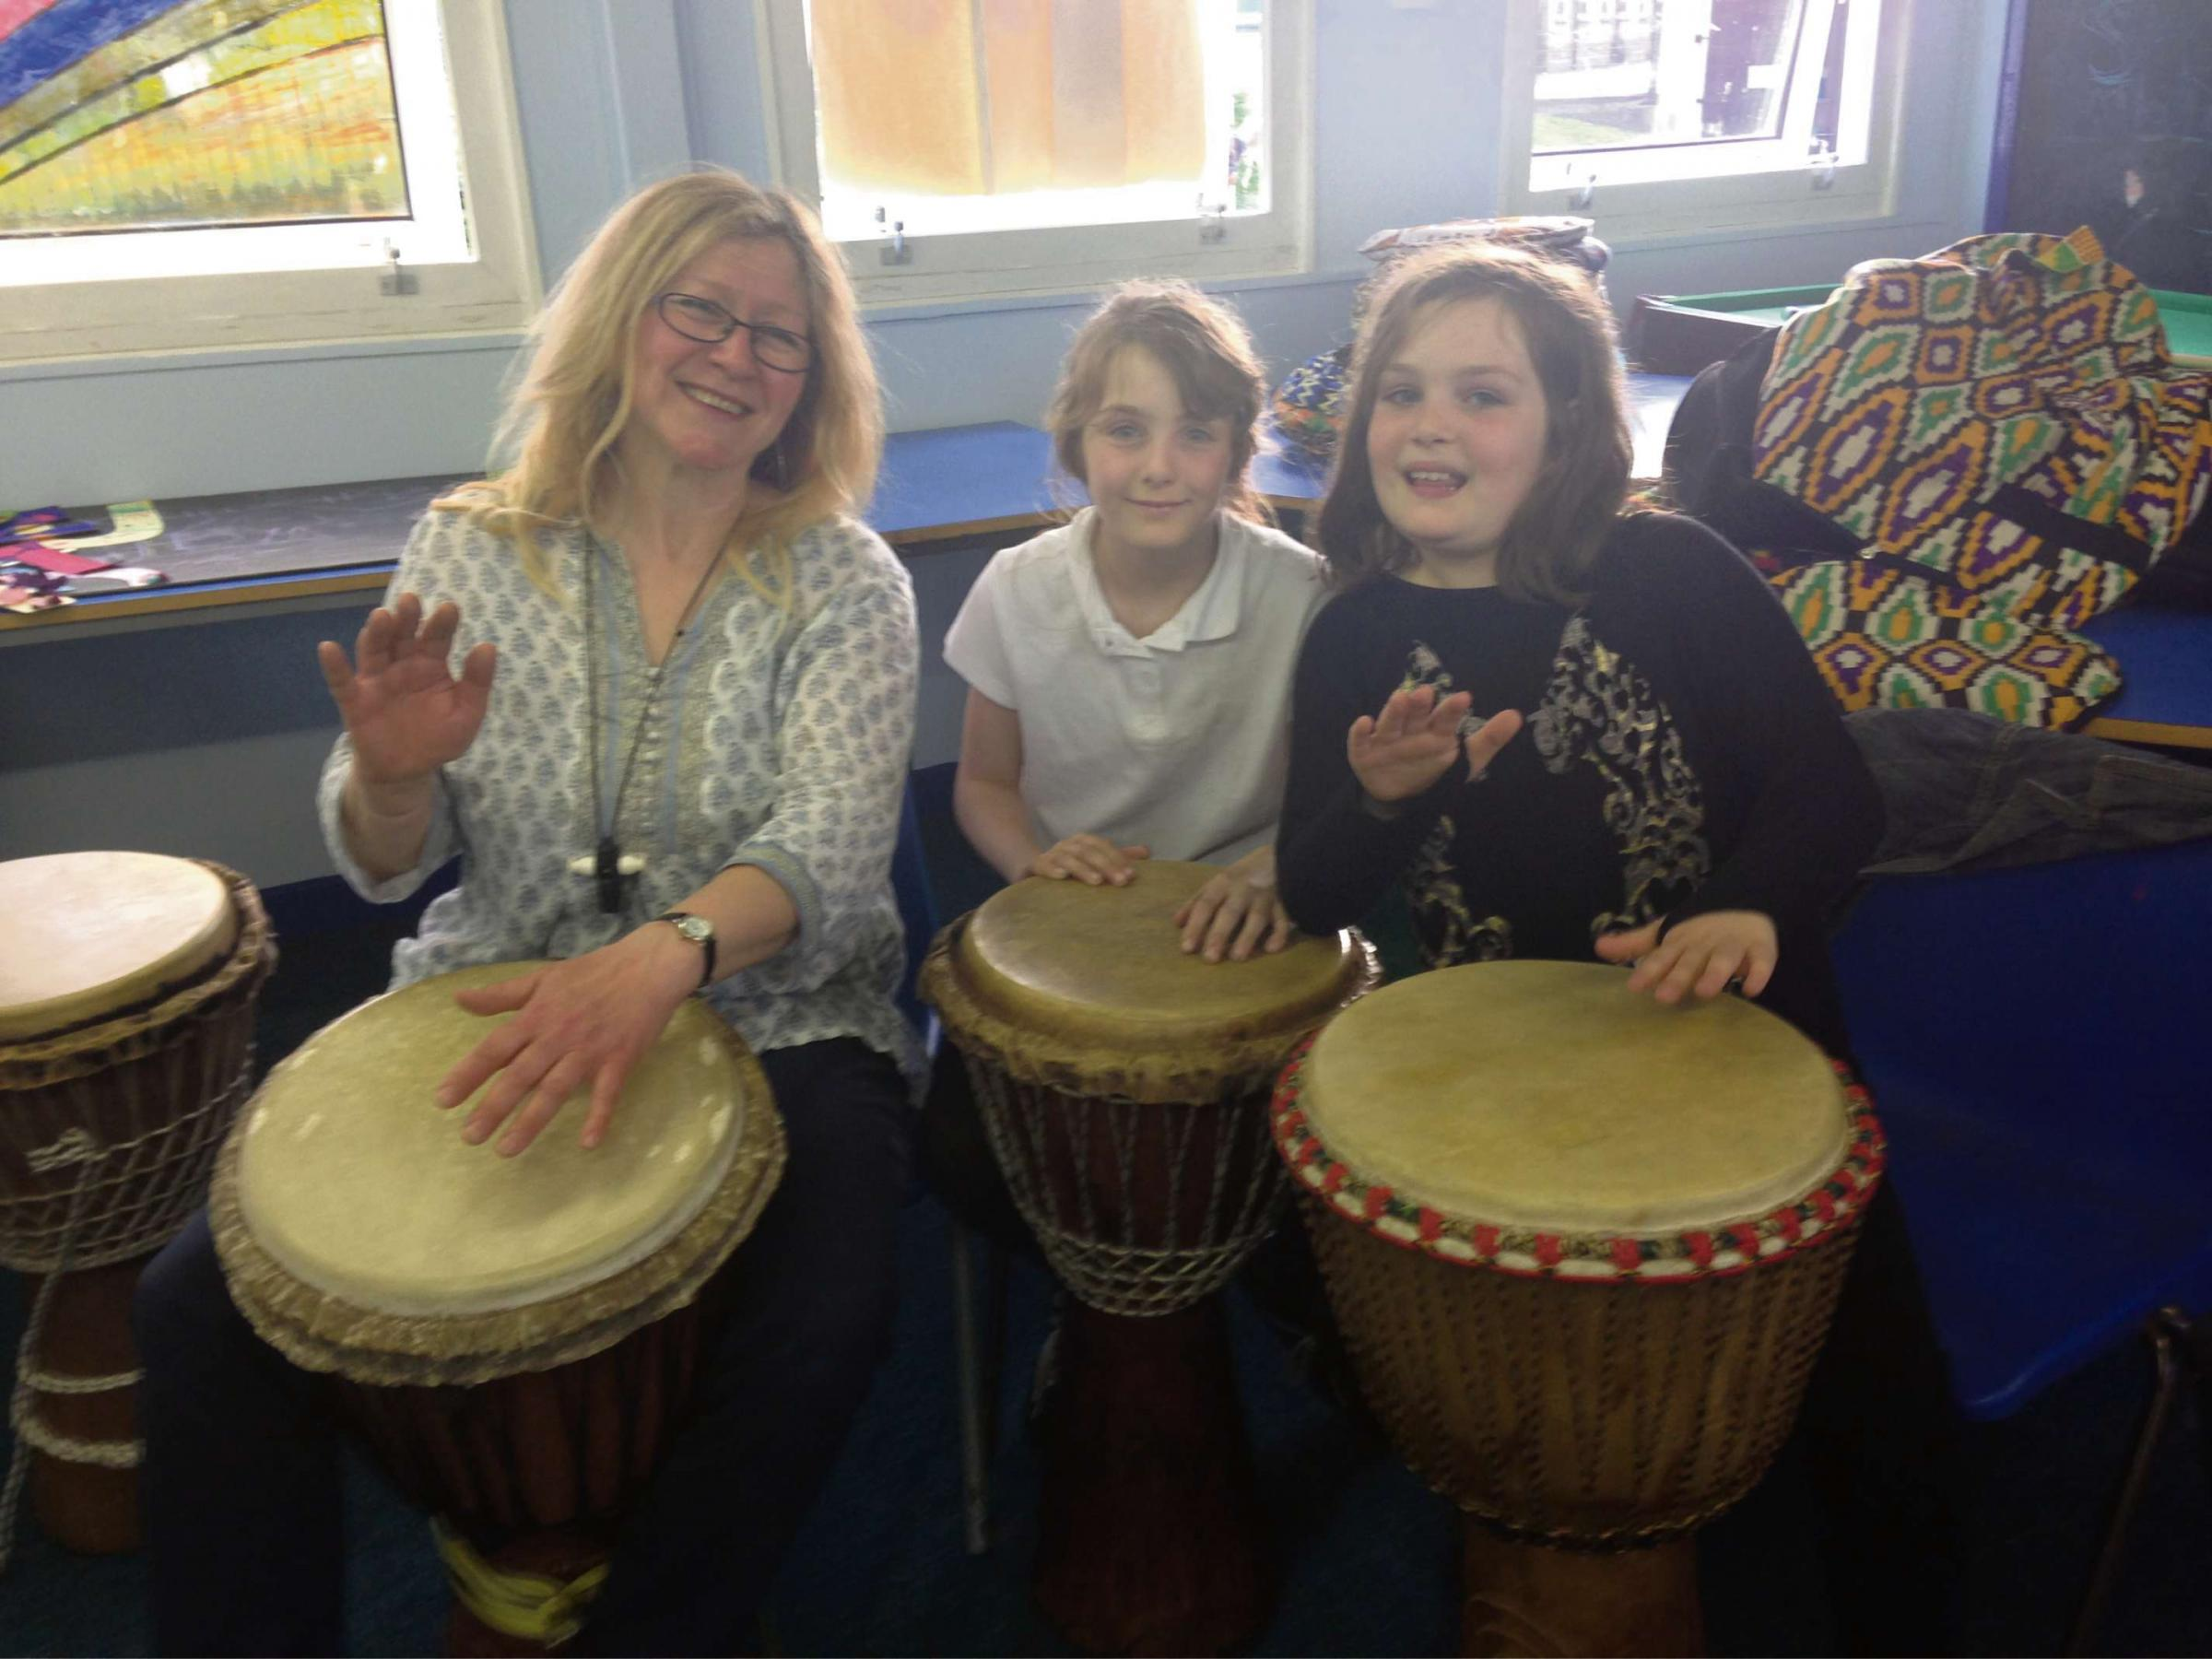 DRUM TIME: Alison Lyon from Drums Agogo with, Katie Durkin,11, and Nadine Crowther, 9.